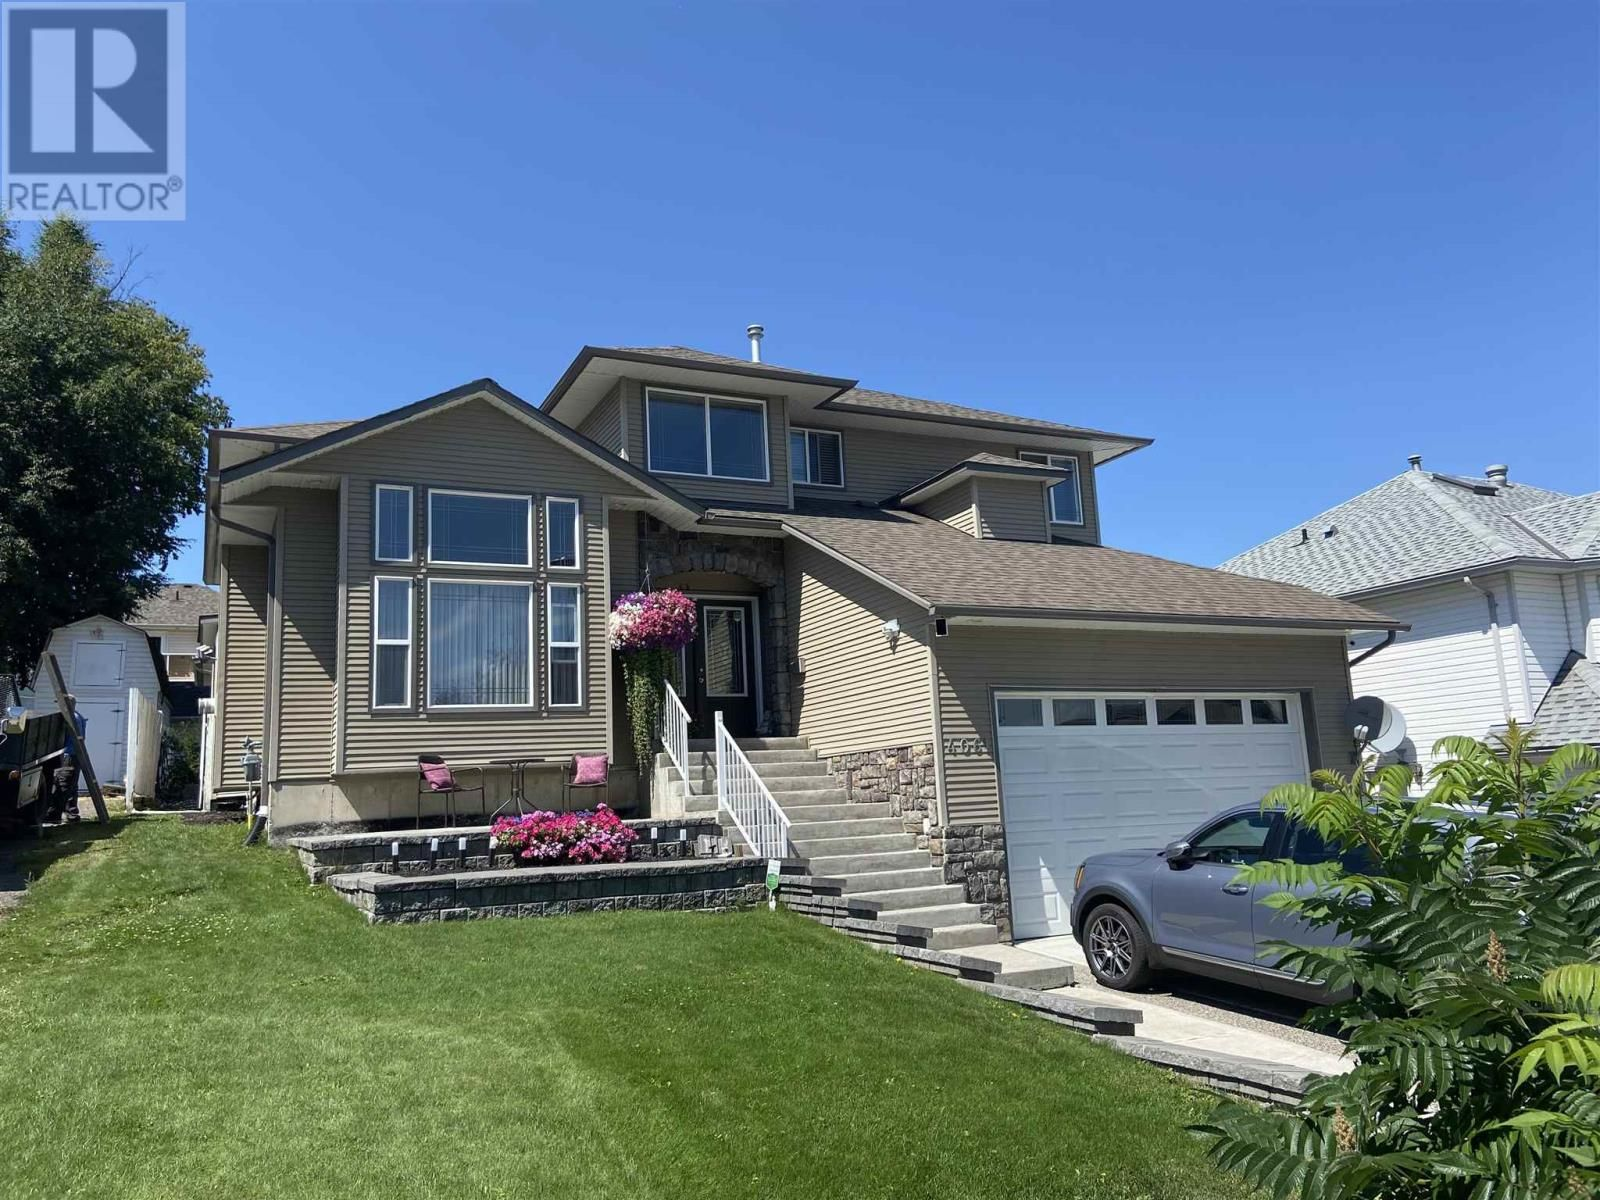 Main Photo: 4061 BARNES DRIVE in Prince George: House for sale : MLS®# R2604179